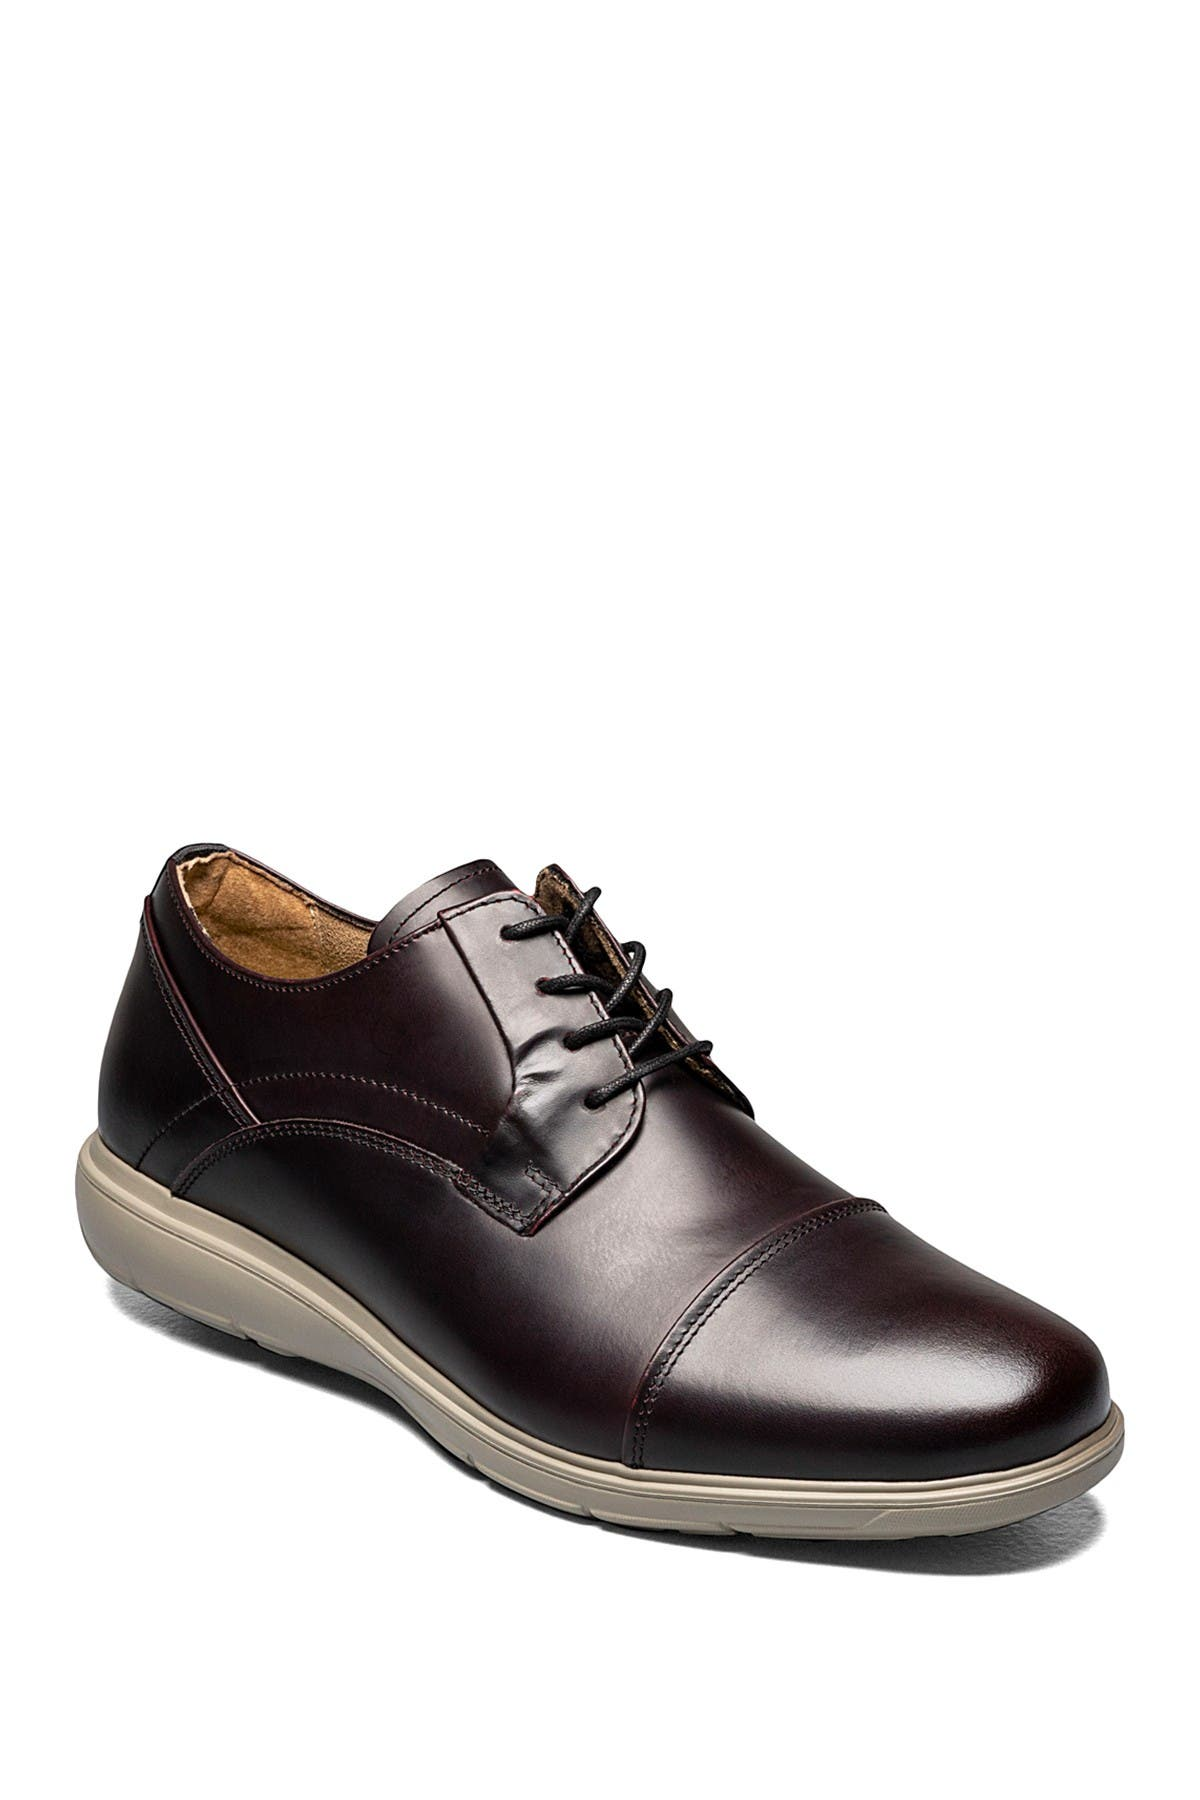 Image of Florsheim Indio Leather Cap Toe Derby